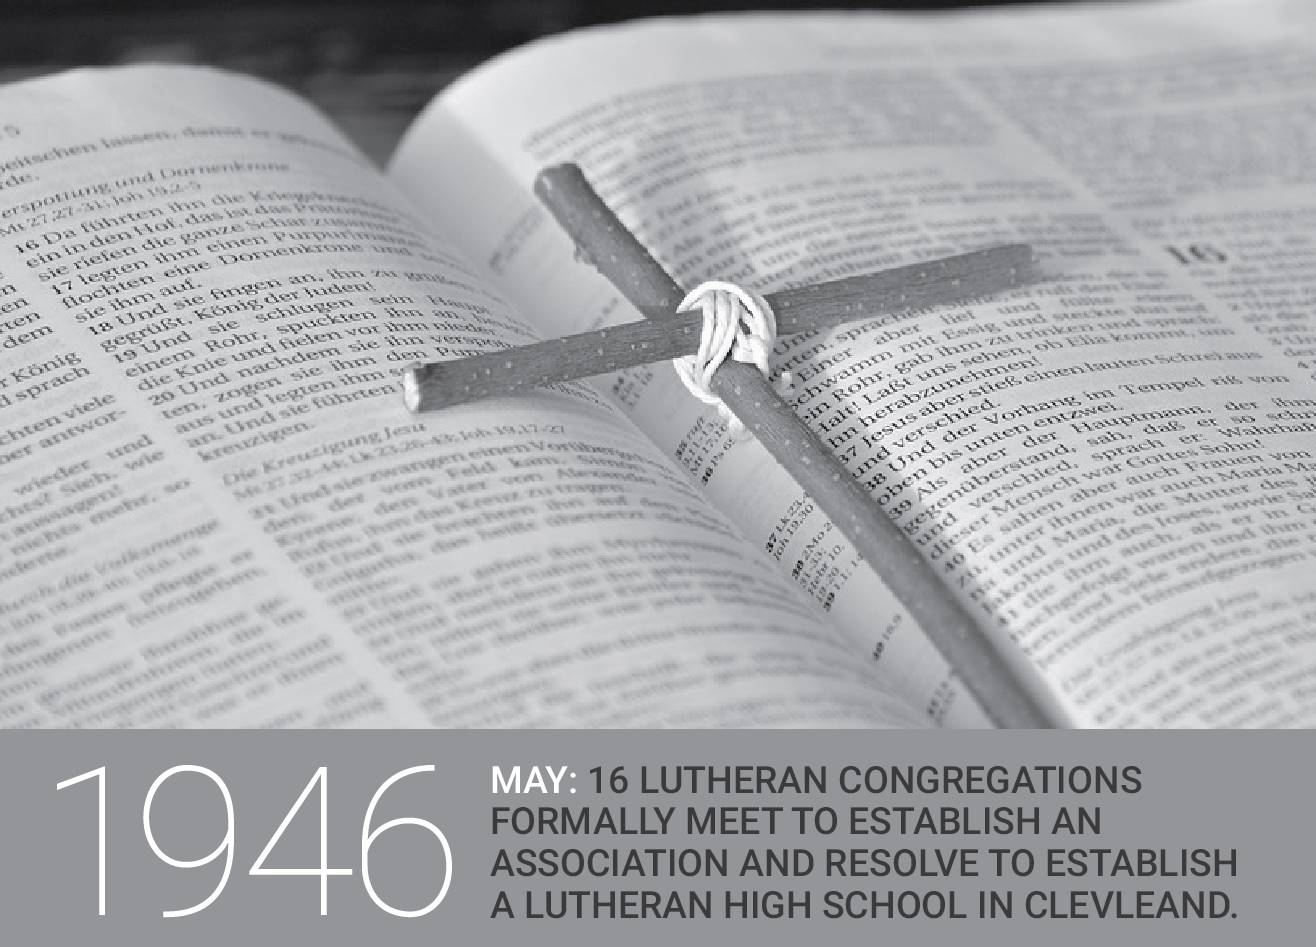 History-1946-Lutheran-Churches-Meet